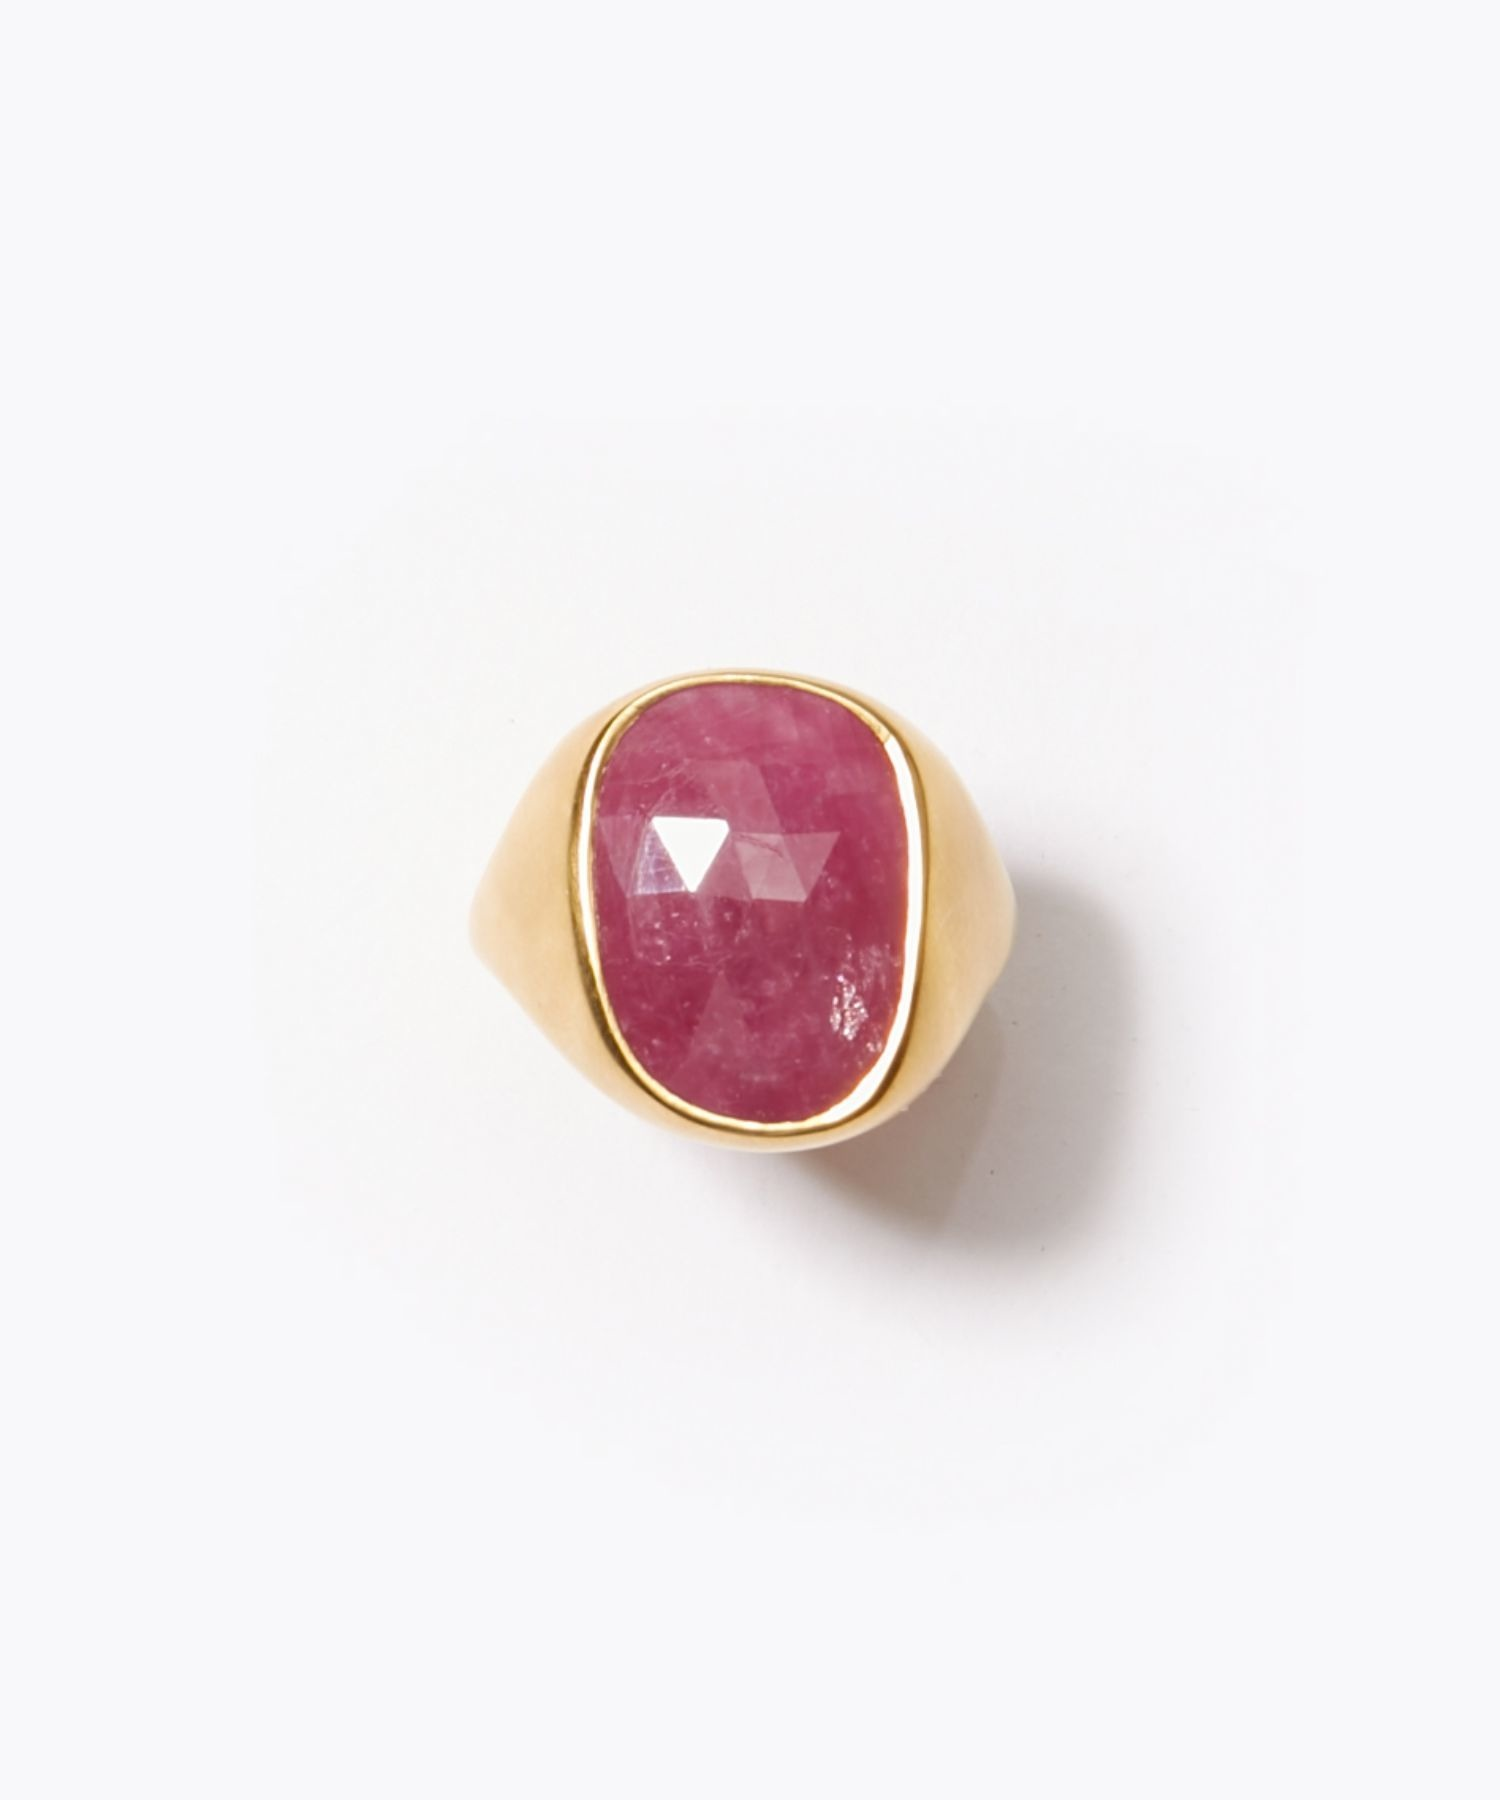 [eutopia] unisex pebble ruby signet ring